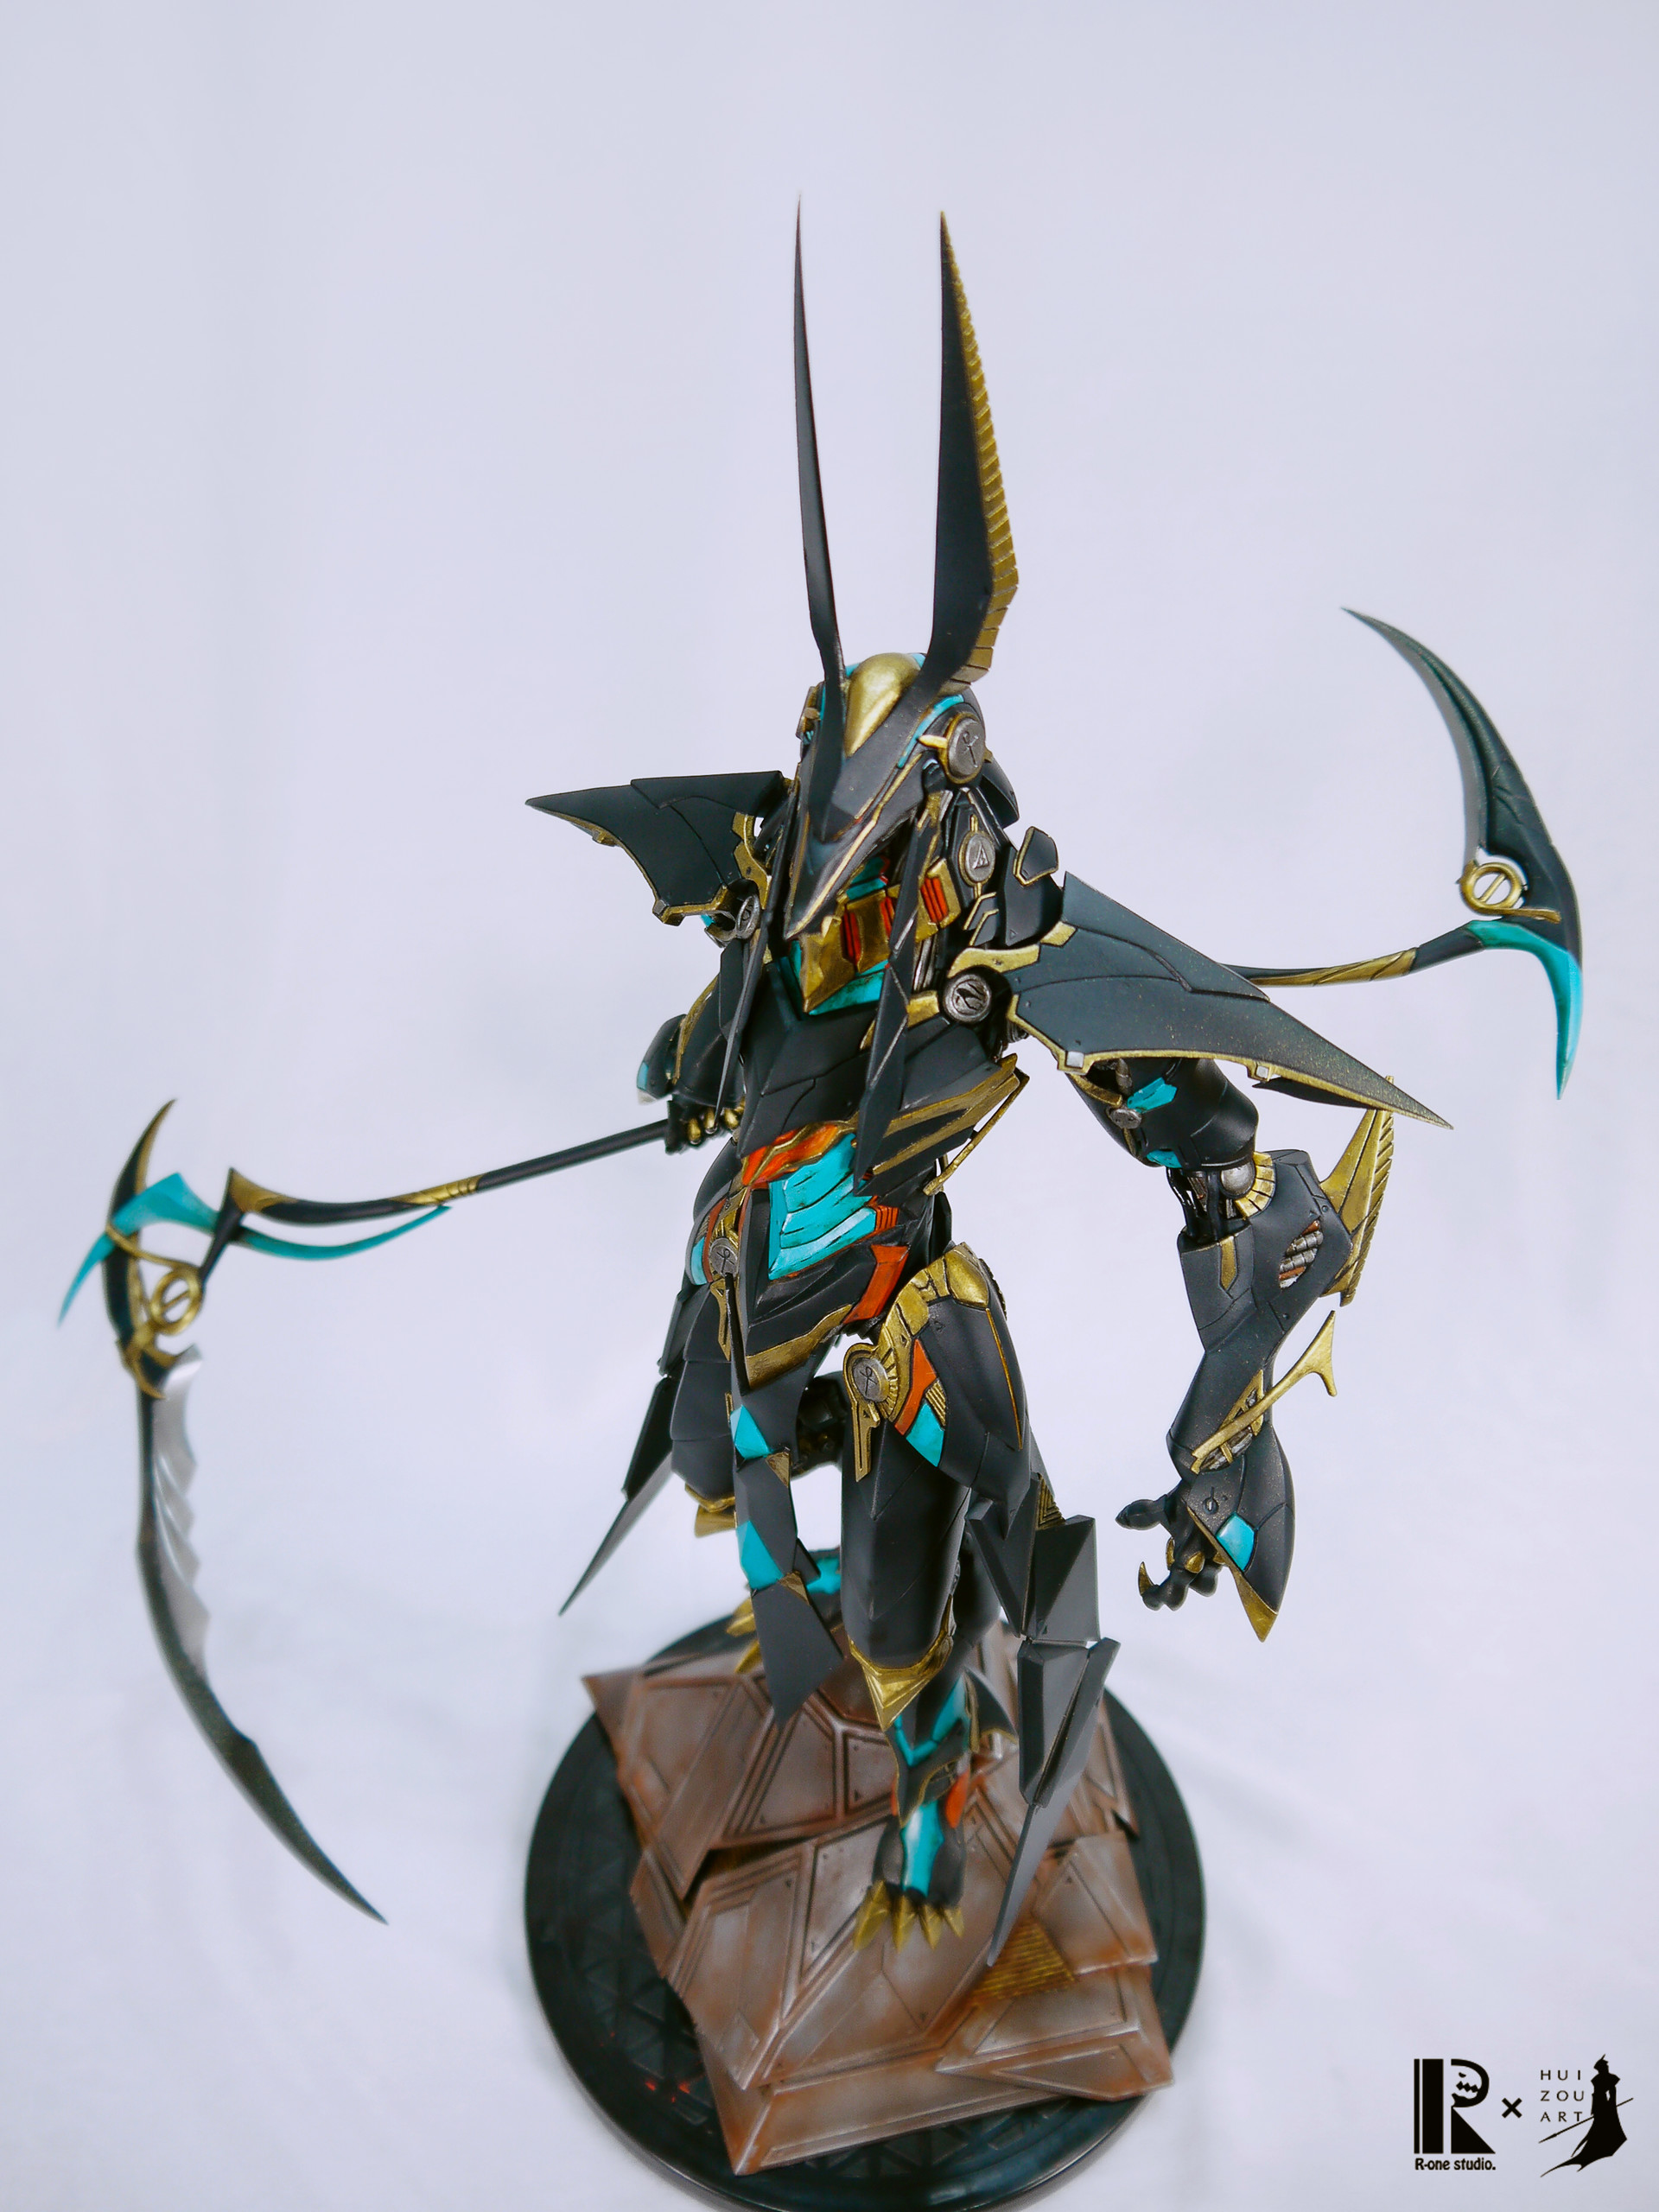 Painted Resin kits photo by R1